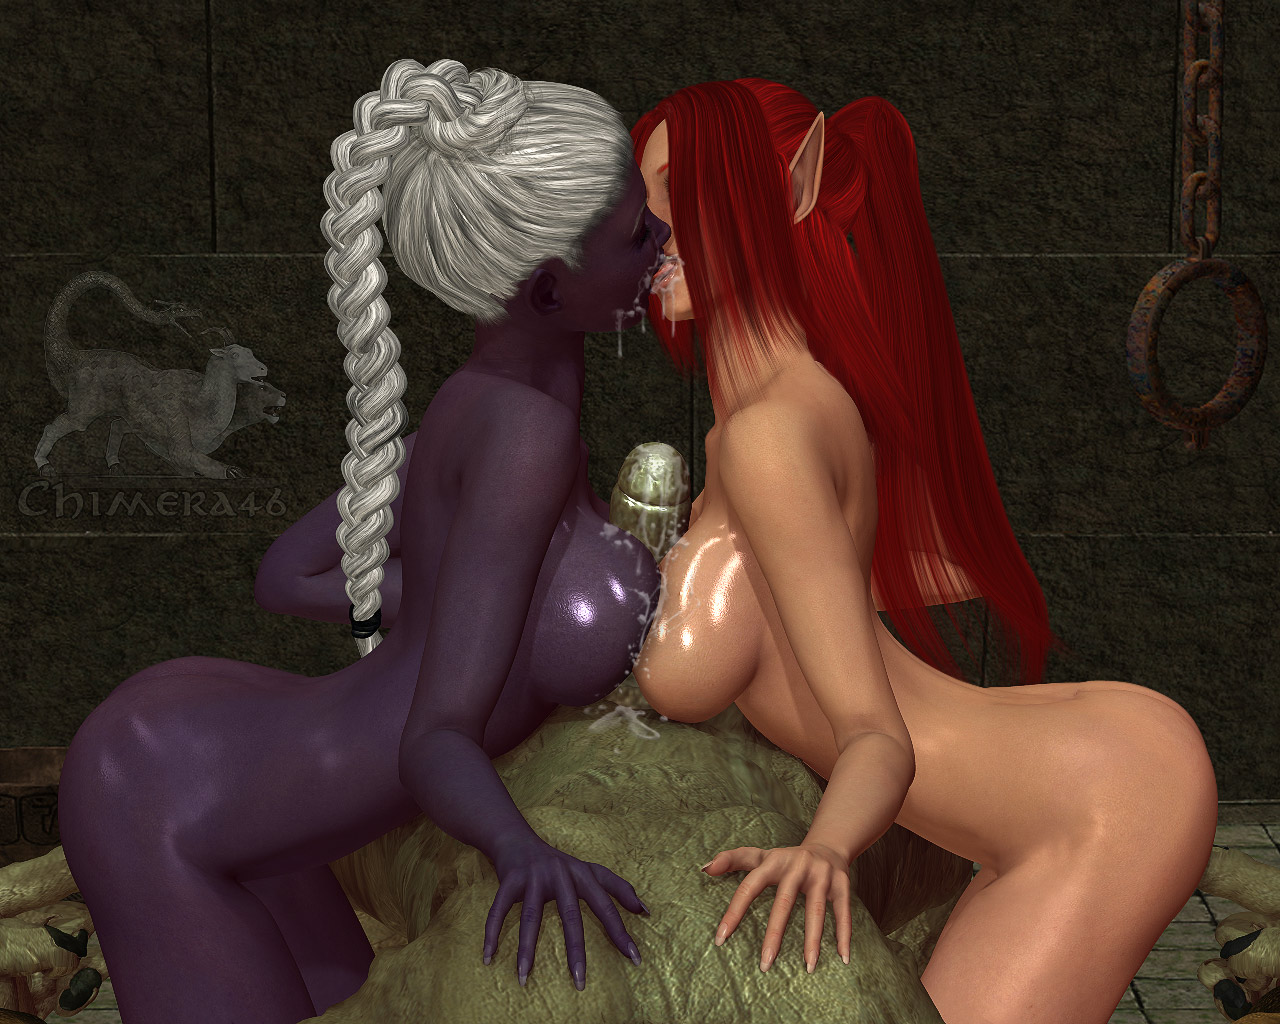 Newground warcraft porn hentai sex download